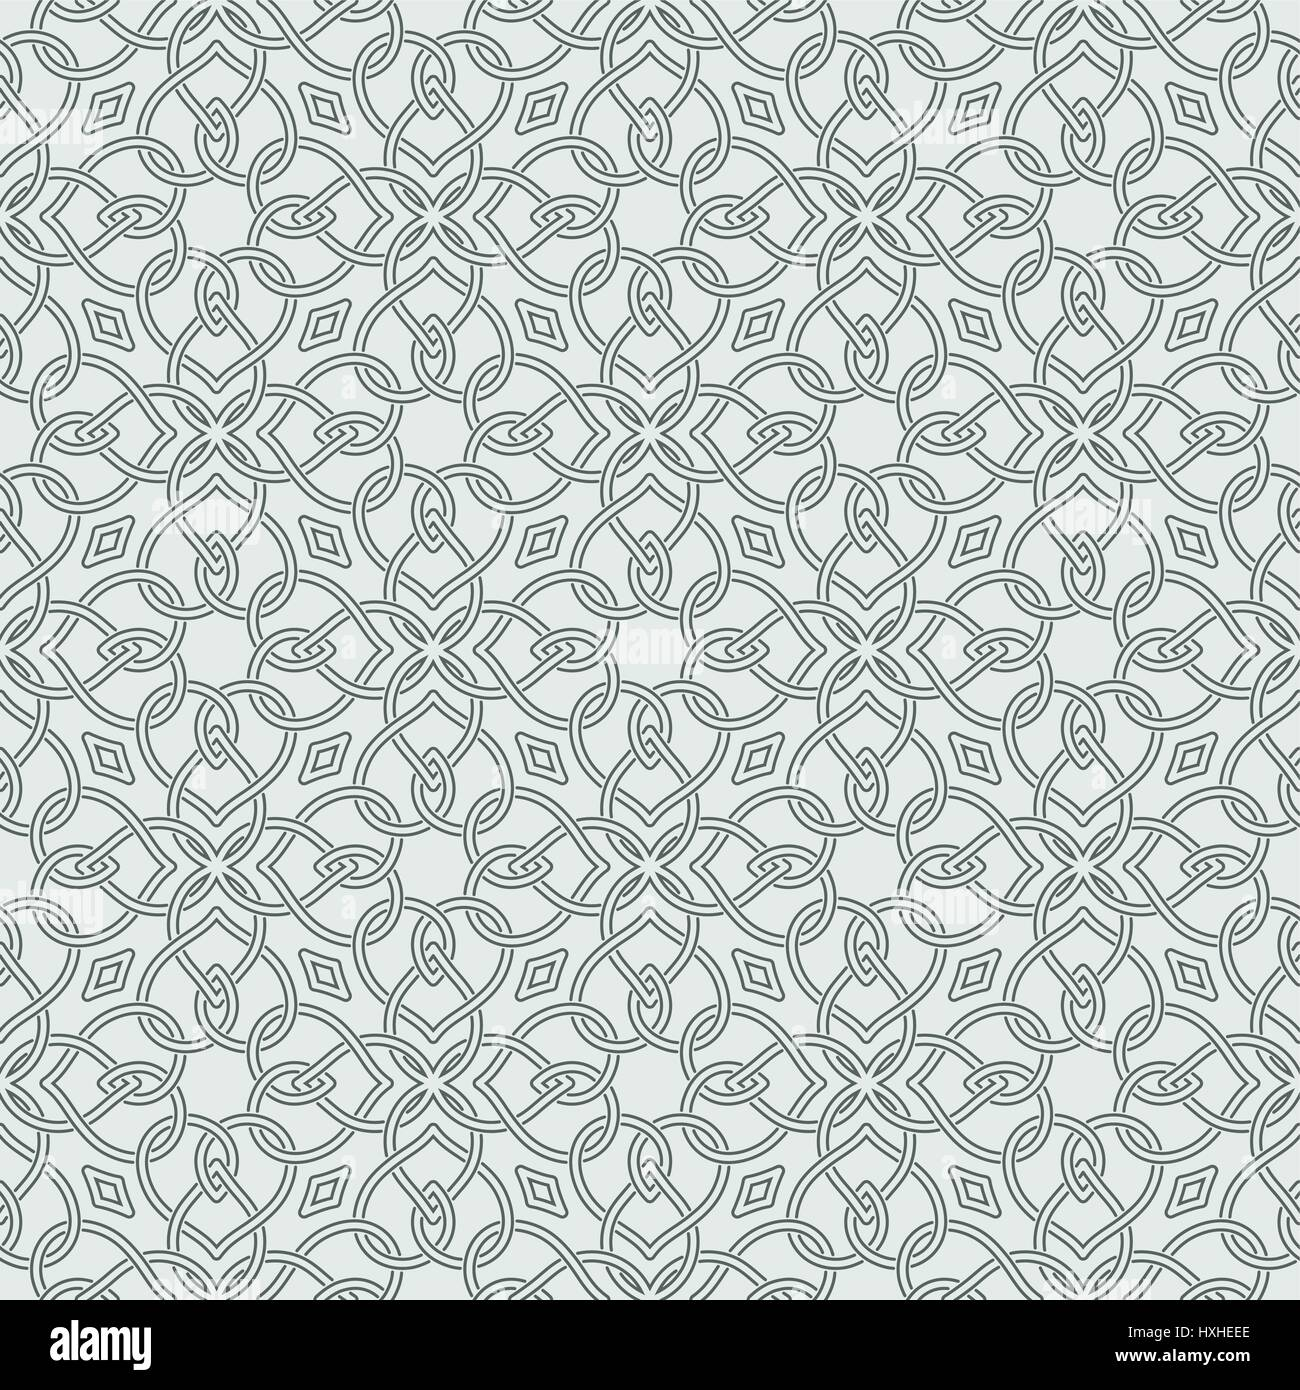 Seamless pattern in arabic style. Abstract background. Islamic texture. Repeating tiles with intersecting curving - Stock Image